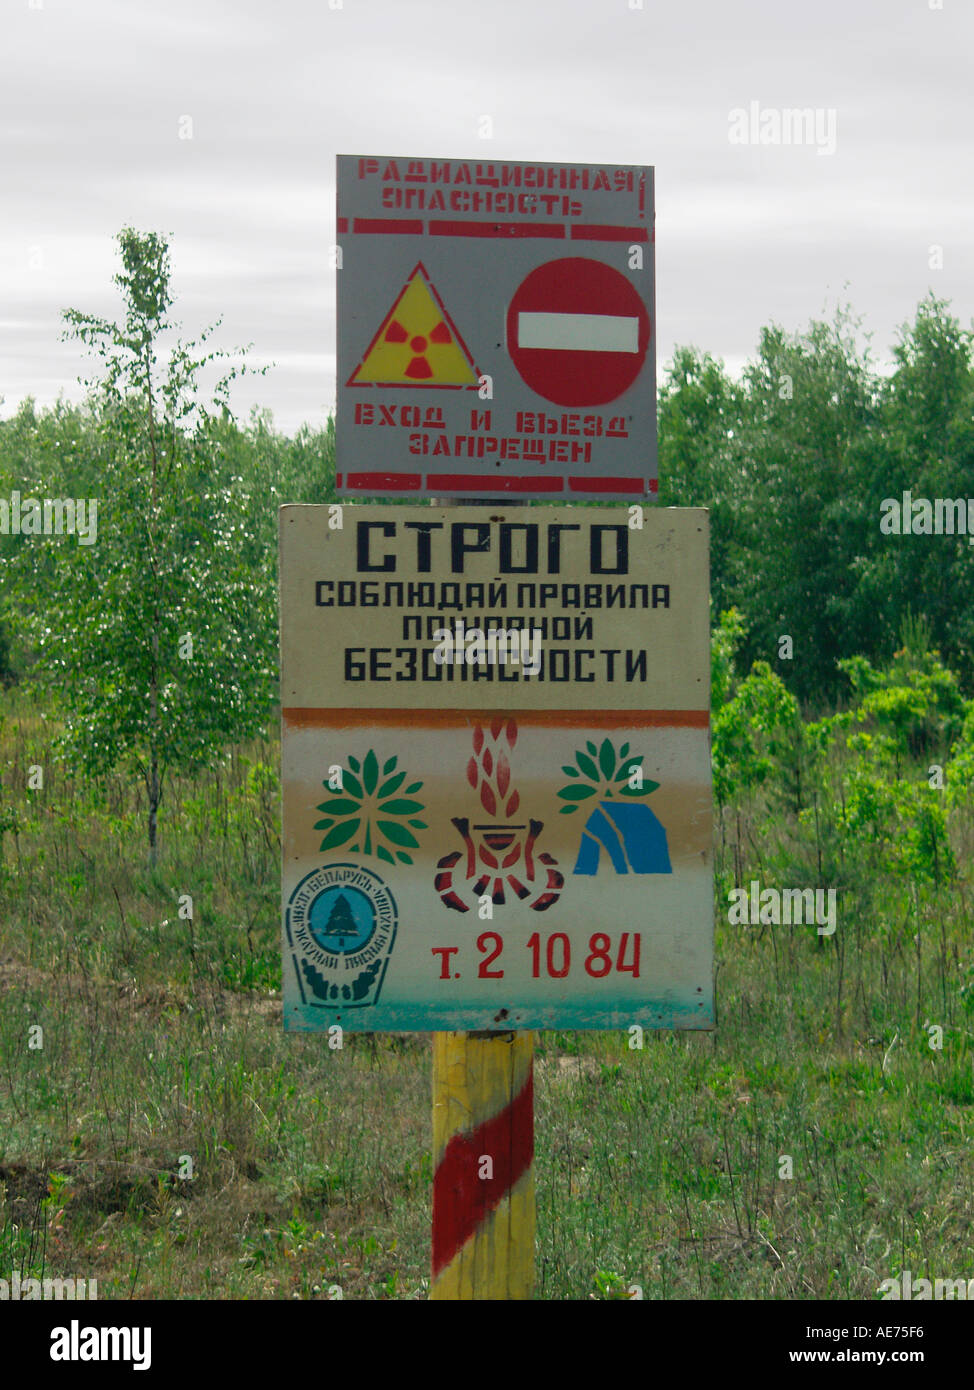 No entry sign to the Chernobyl exclusion zone, mounted sign roadside in Belarus - Stock Image